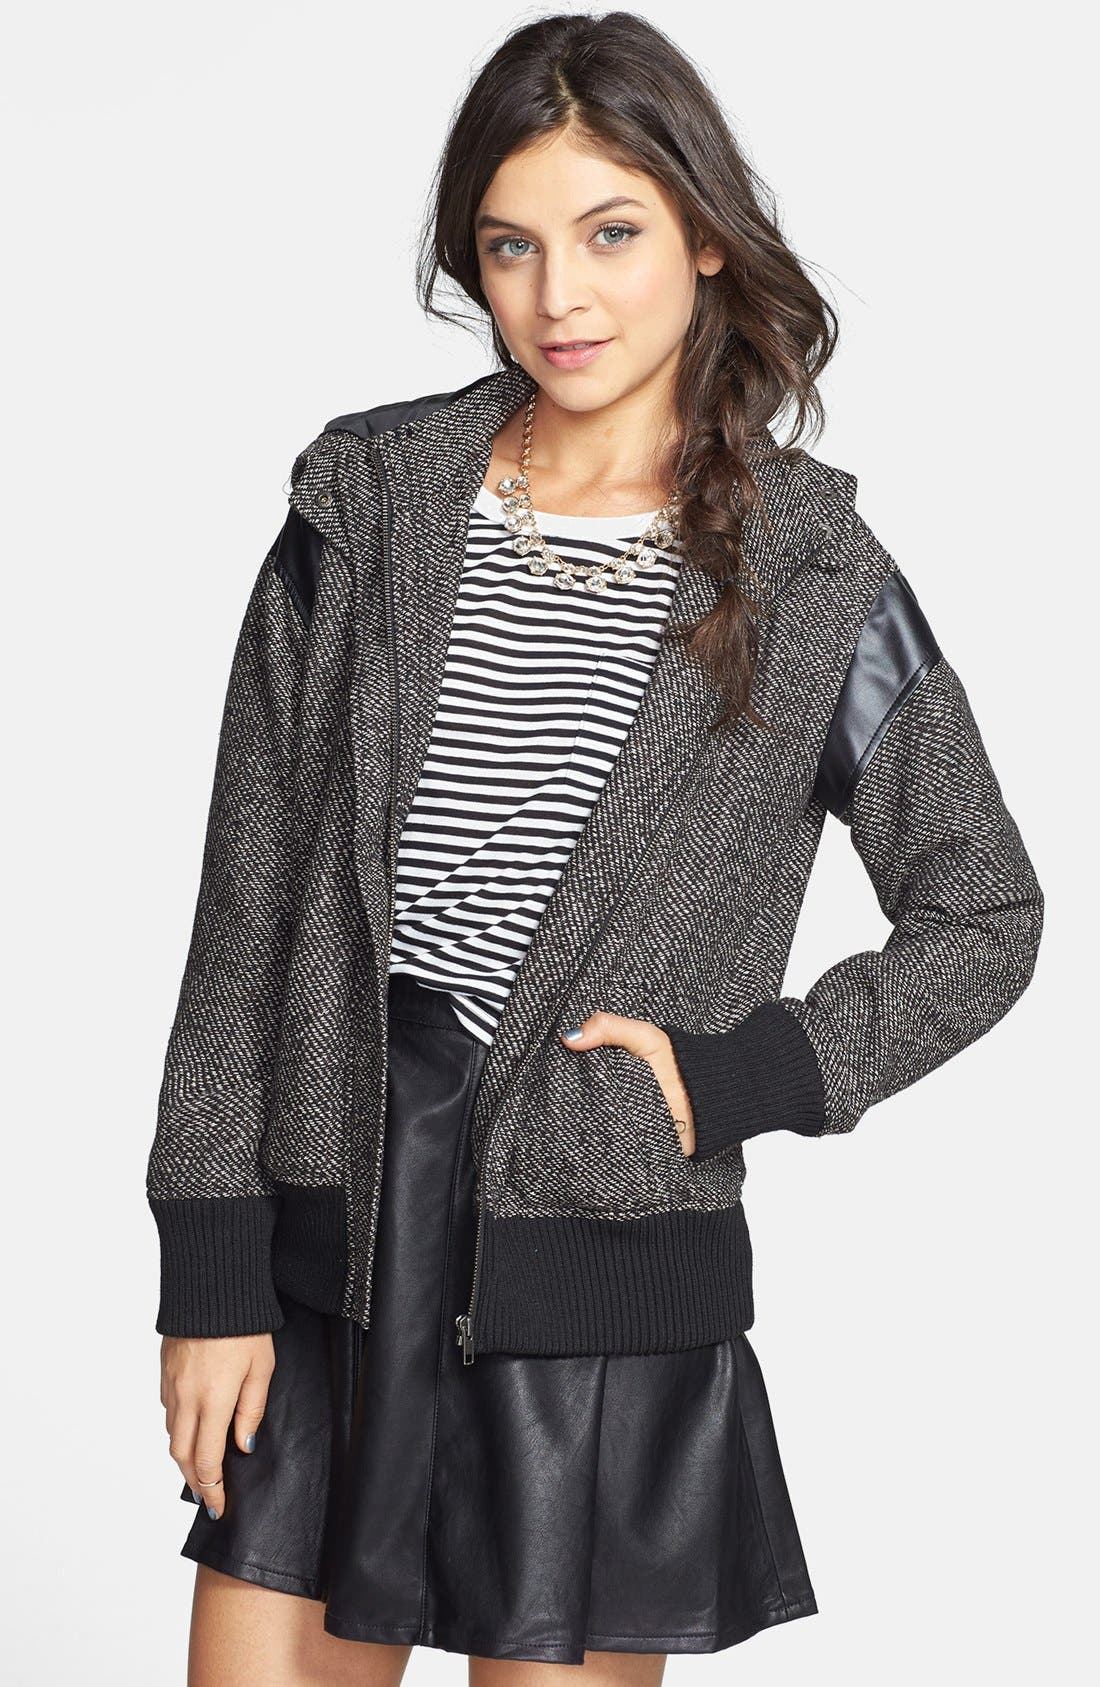 Alternate Image 1 Selected - BP. Faux Leather Shoulder Tweed Bomber Jacket (Juniors)